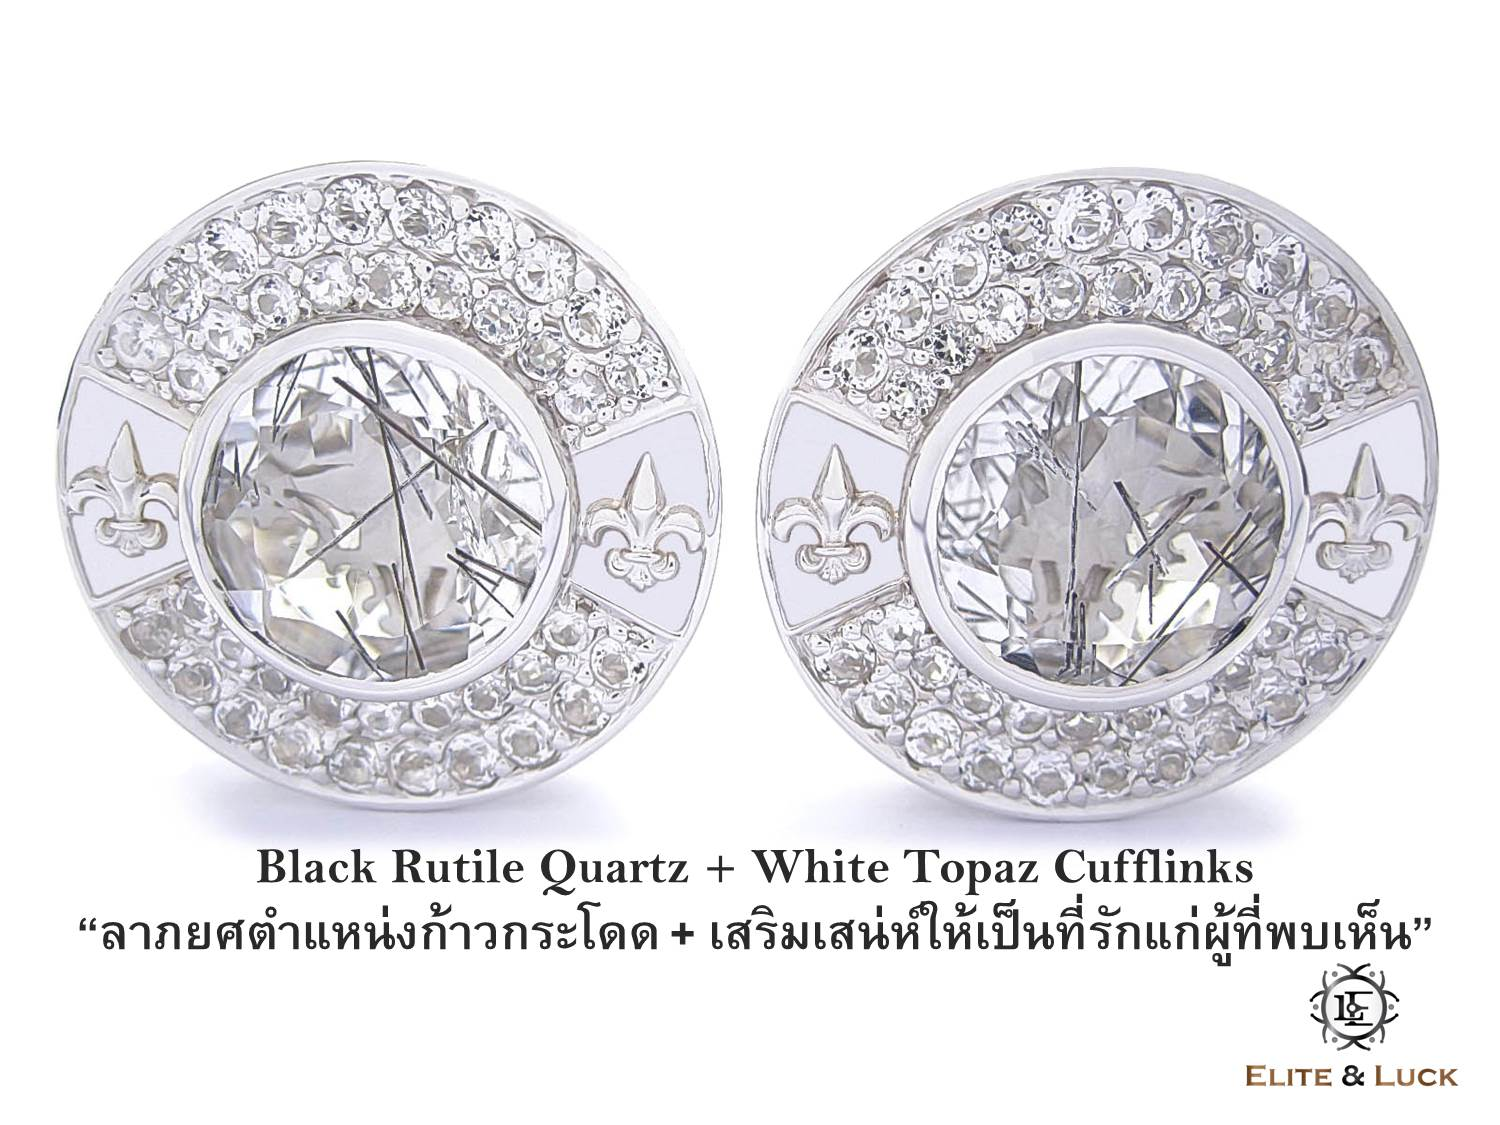 Black Rutile Quartz + White Topaz Sterling Silver Cufflinks สี Rhodium รุ่น Royal